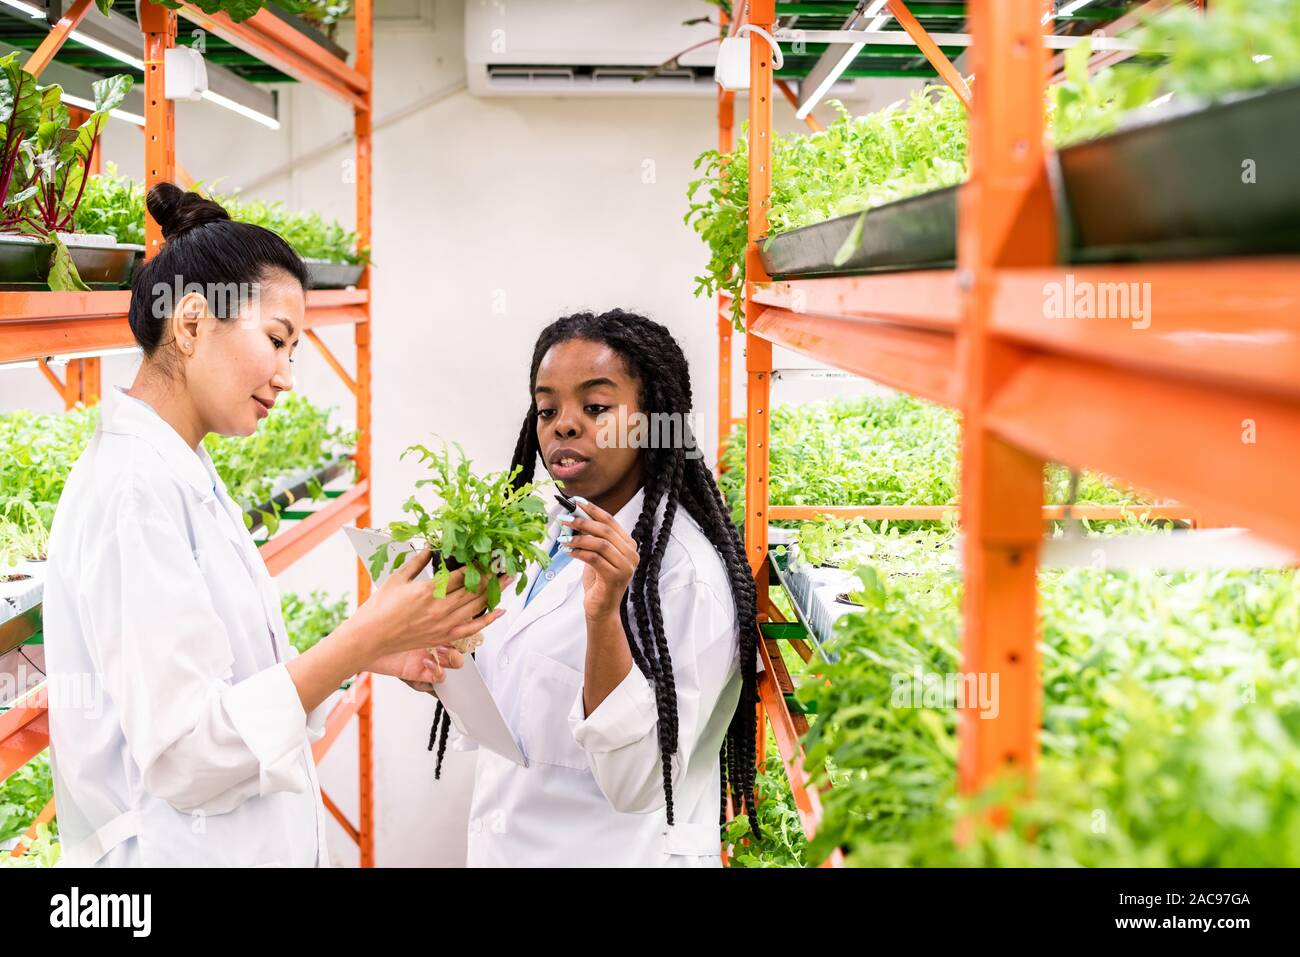 Young African agronomist pointing at green seedlings held by her Asian colleague Stock Photo